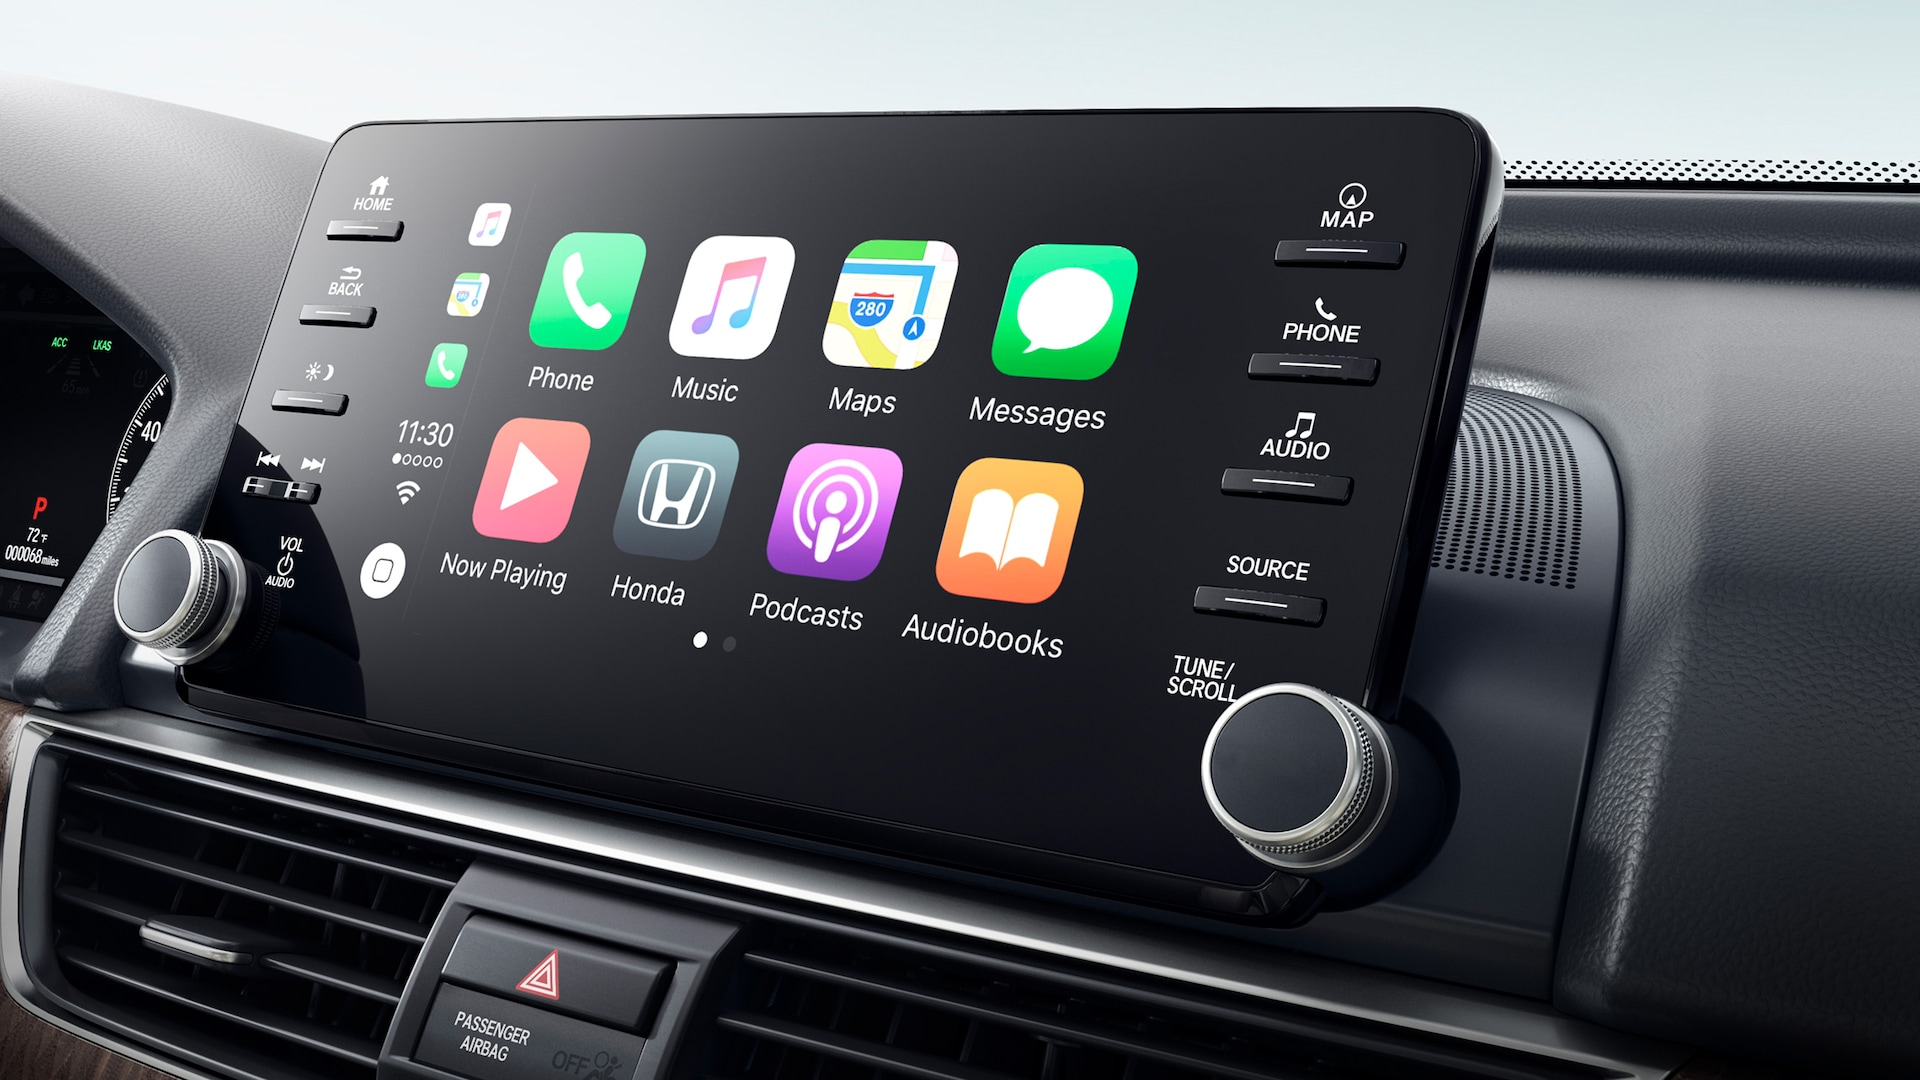 Integración con Apple CarPlay® en el sistema de audio en pantalla táctil del Honda Accord Touring 2.0T 2020.